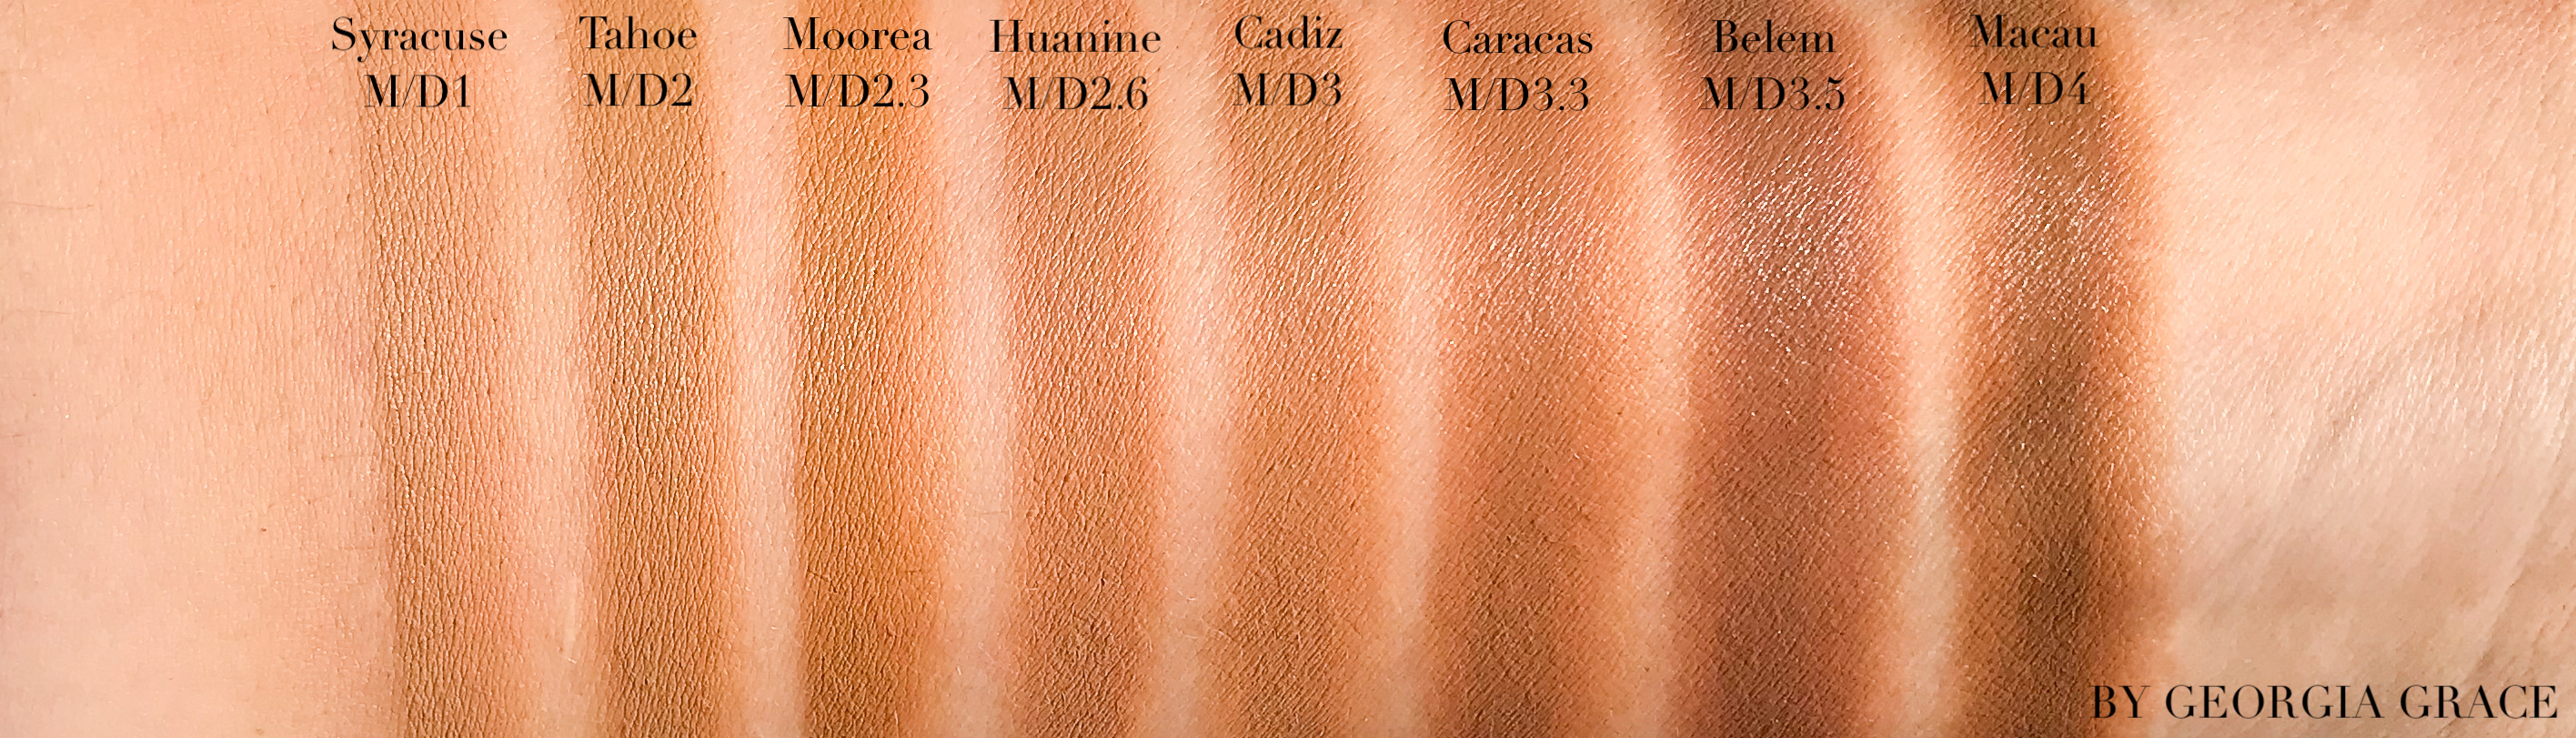 Nars Natural Radiant Longwear Foundation Swatches Review By Georgia Grace